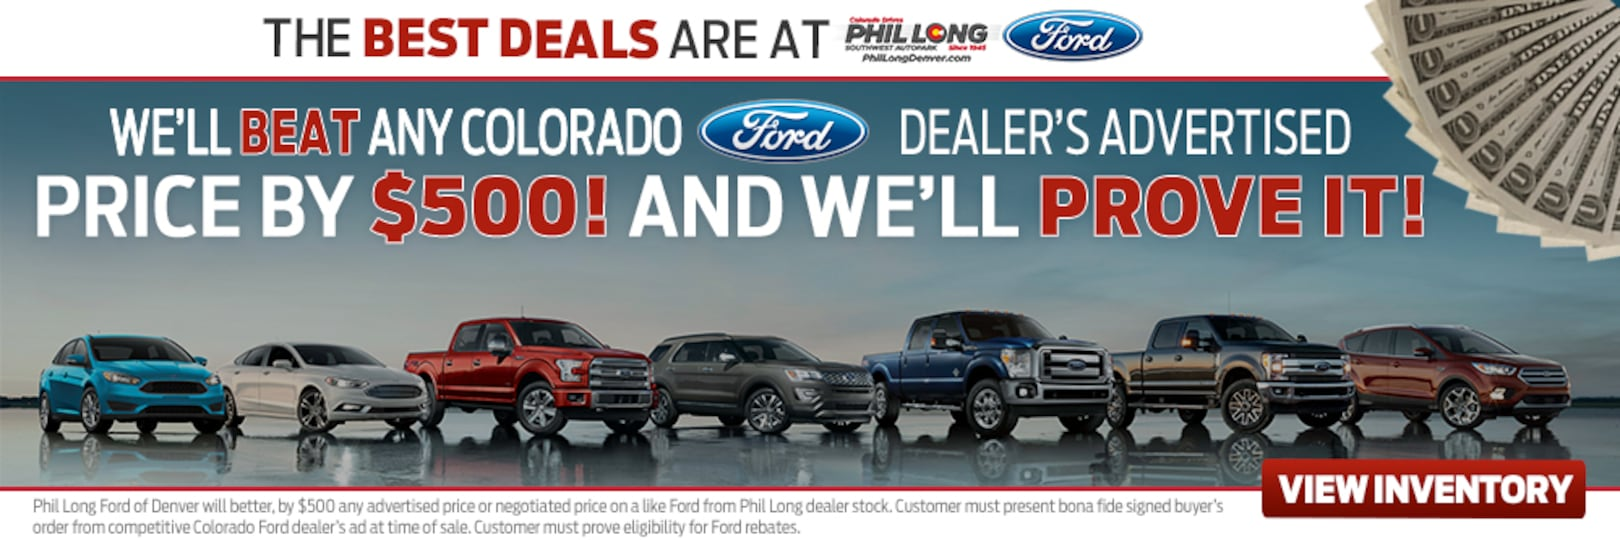 Ford Dealership, Ford Cars, Trucks in Denver at Phil Long